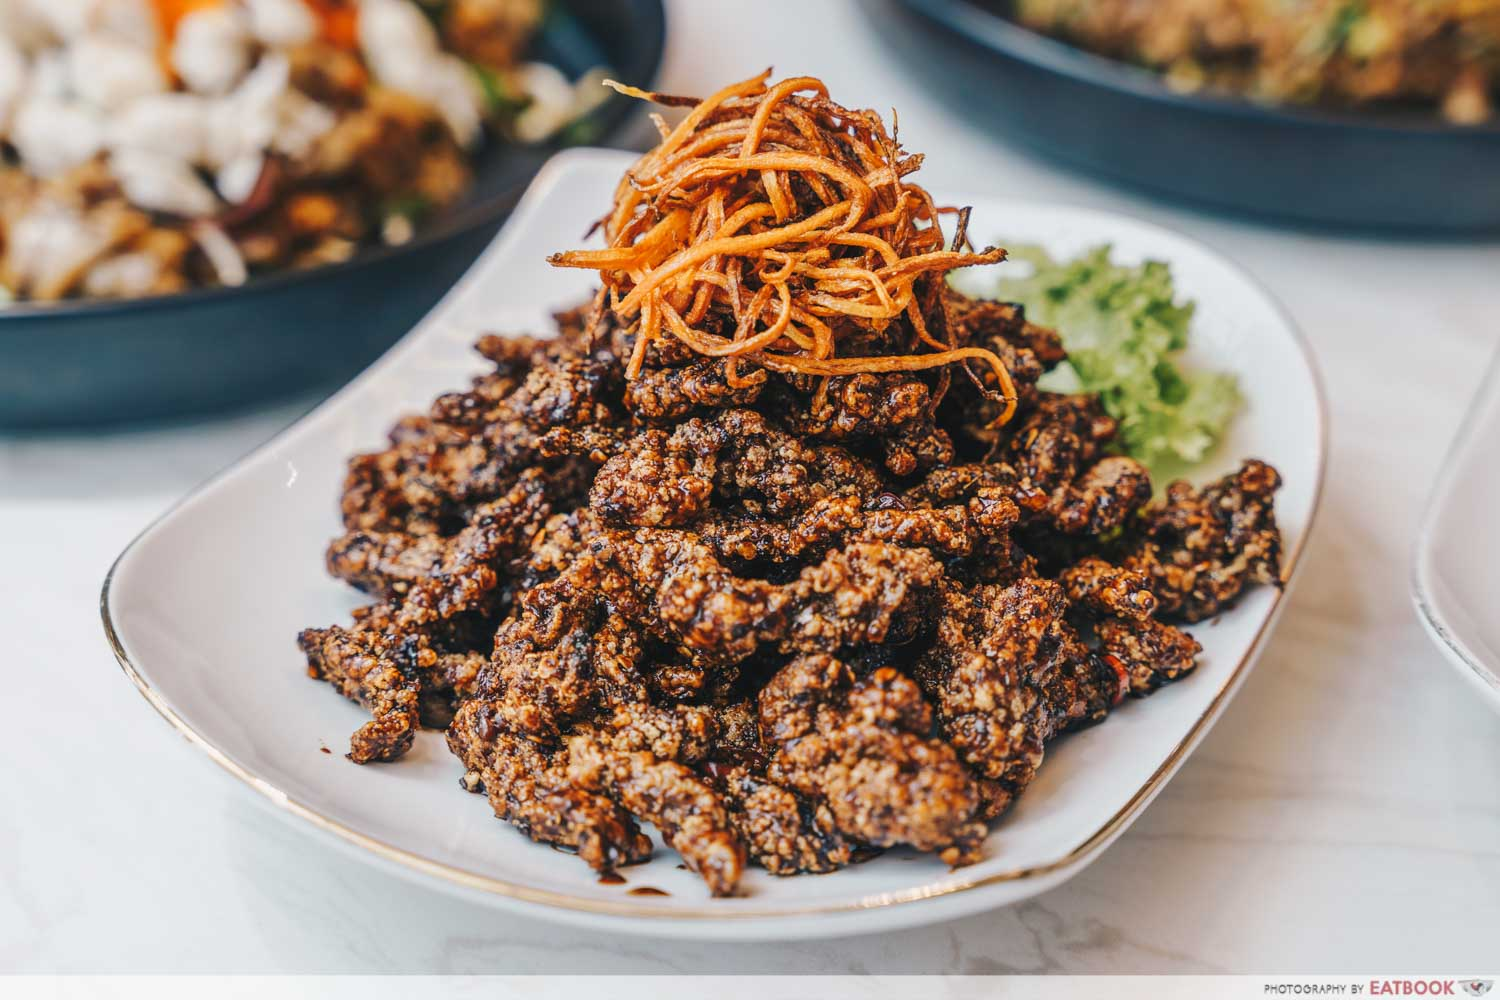 COCA double-Fried Beef Strips